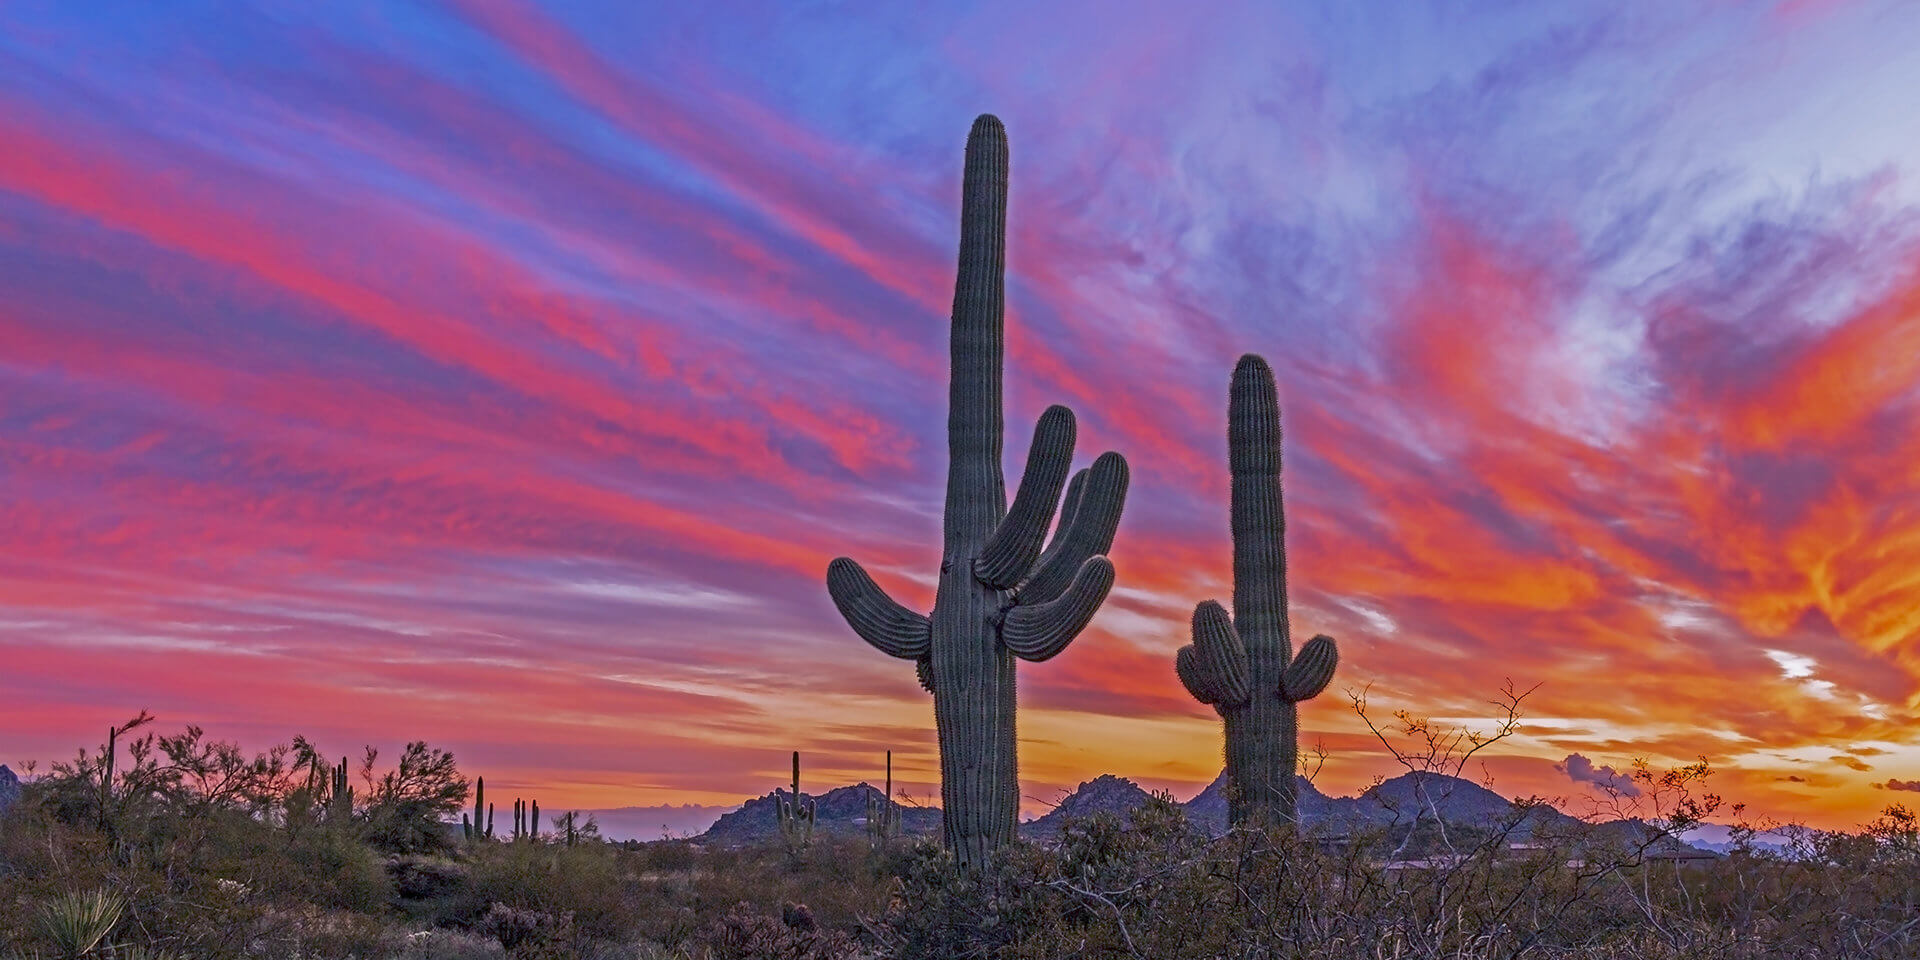 Super Vibrant  Arizona  Landscape Sunset With Cactus Near Phoenix & Scottsdale,. XMAS day ,2019